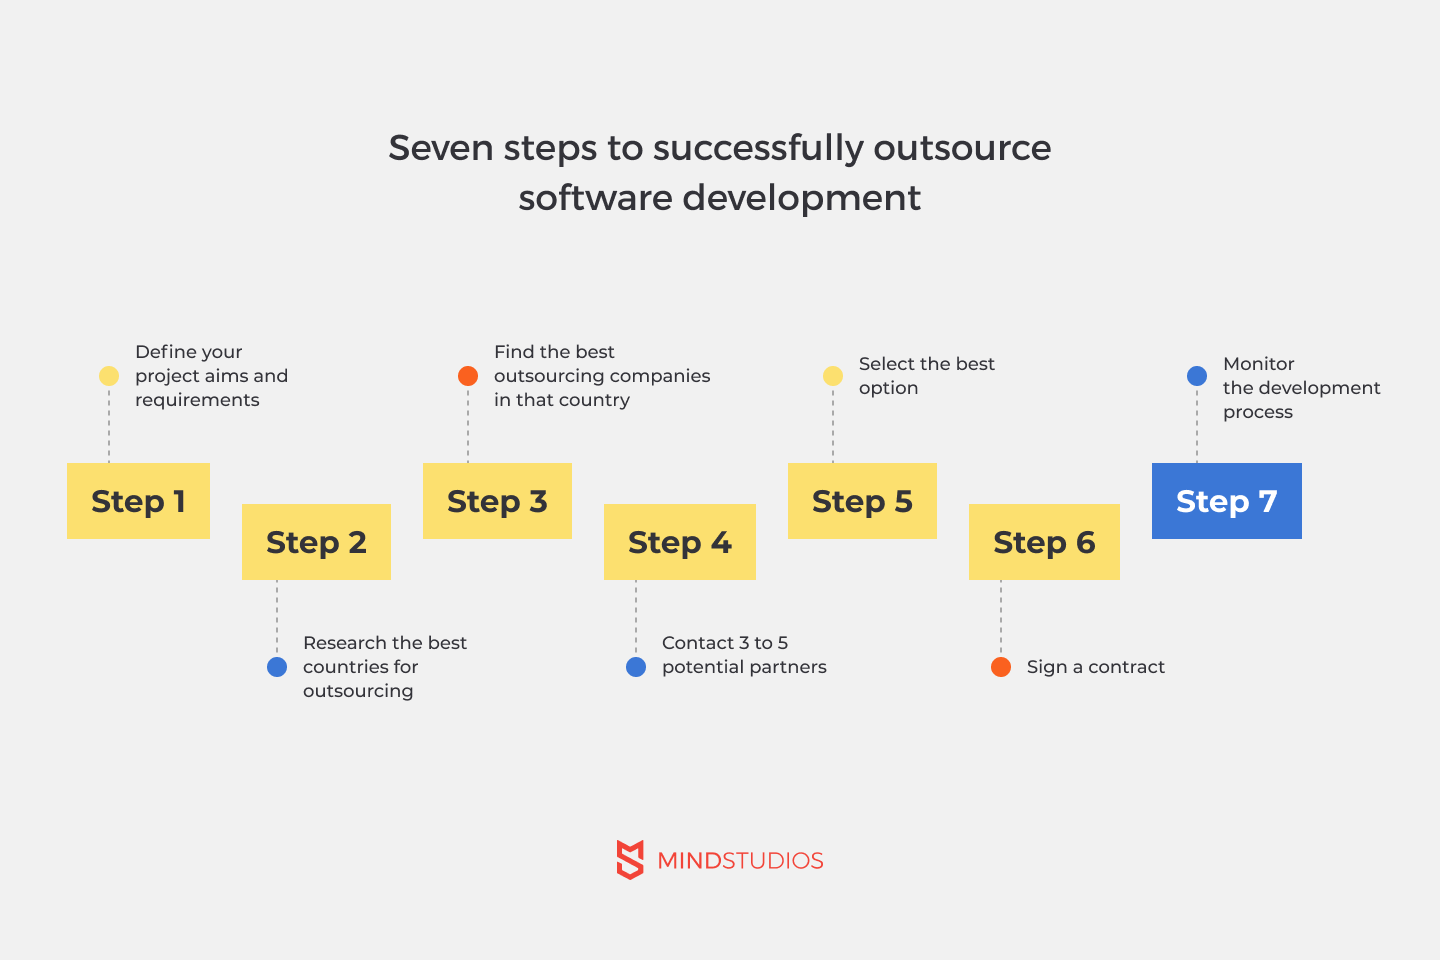 7 steps to successfully outsource software development